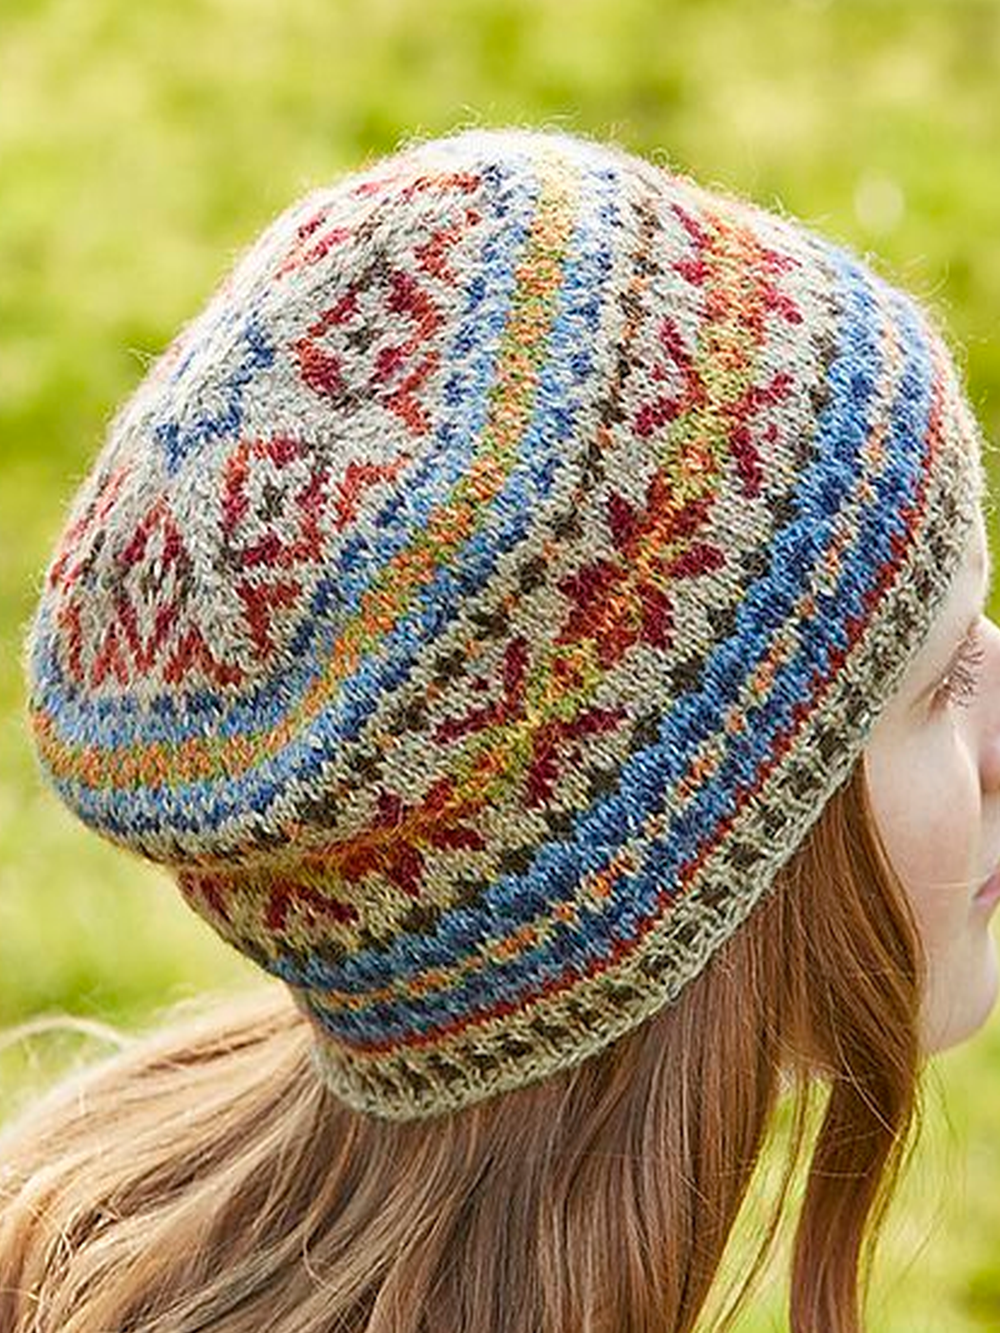 Irisruby Women Winter Hats Fashion Casual Printed Knitted Hats